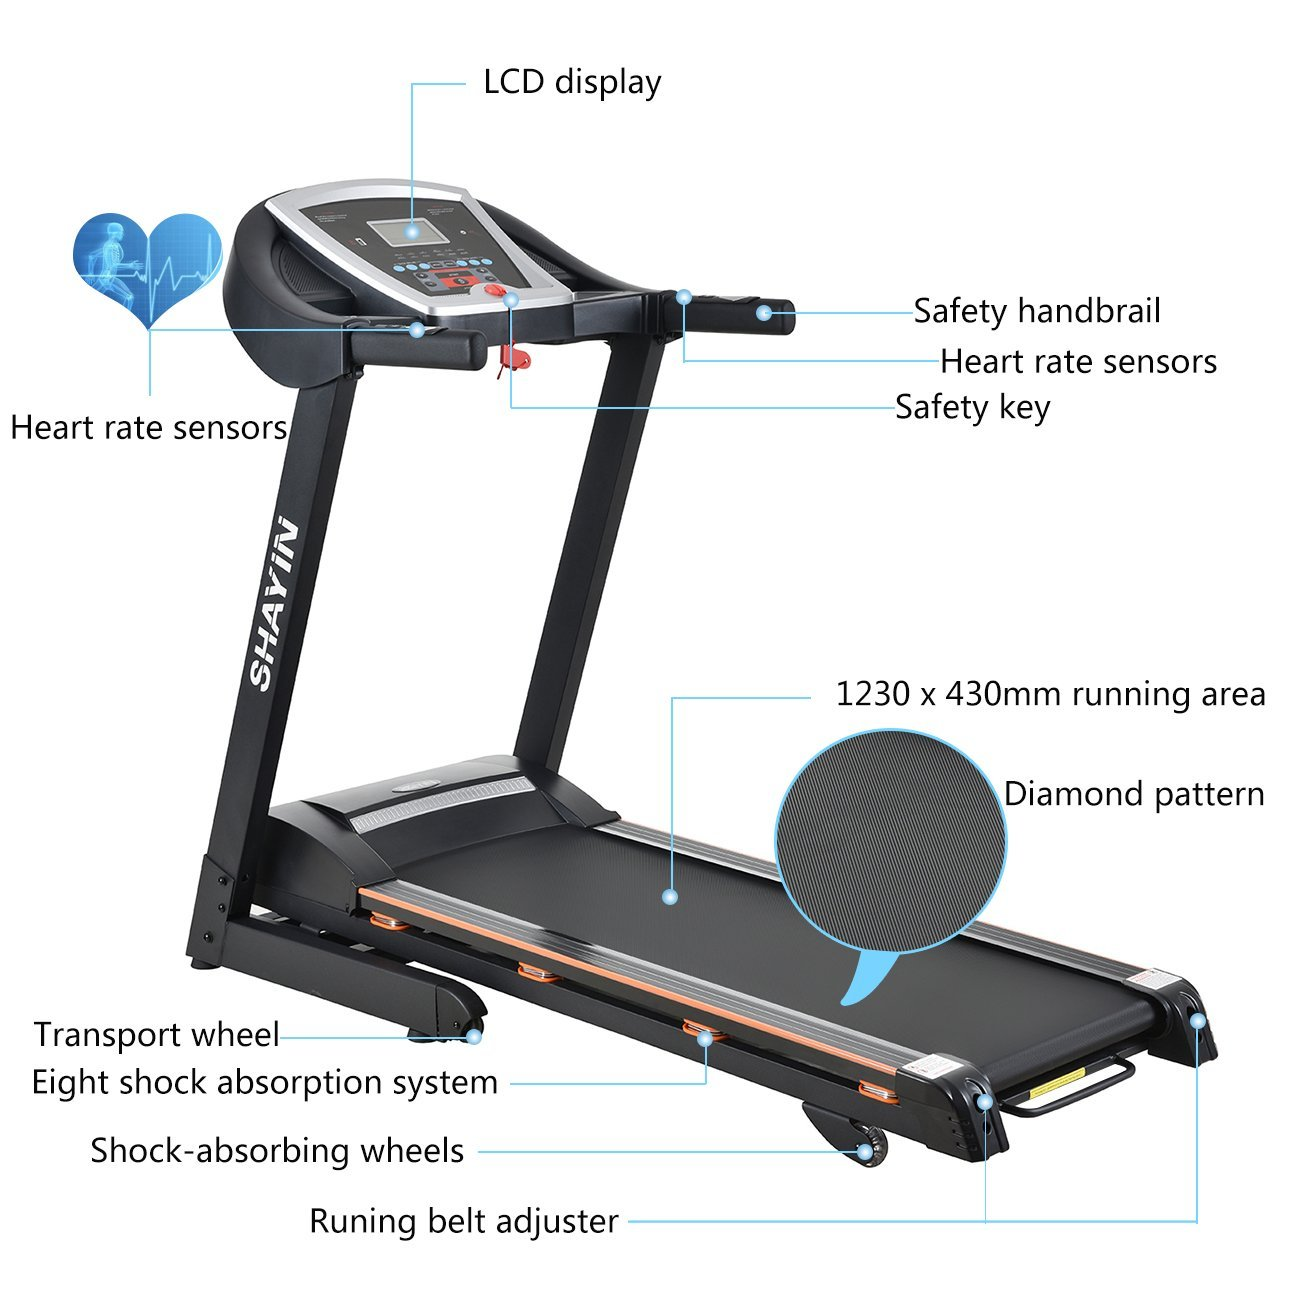 Treadmill Portable Folding Running Machine Indoor Commercial Home Health Fitness Training Equipment (US STOCK) by Shayin (Image #2)